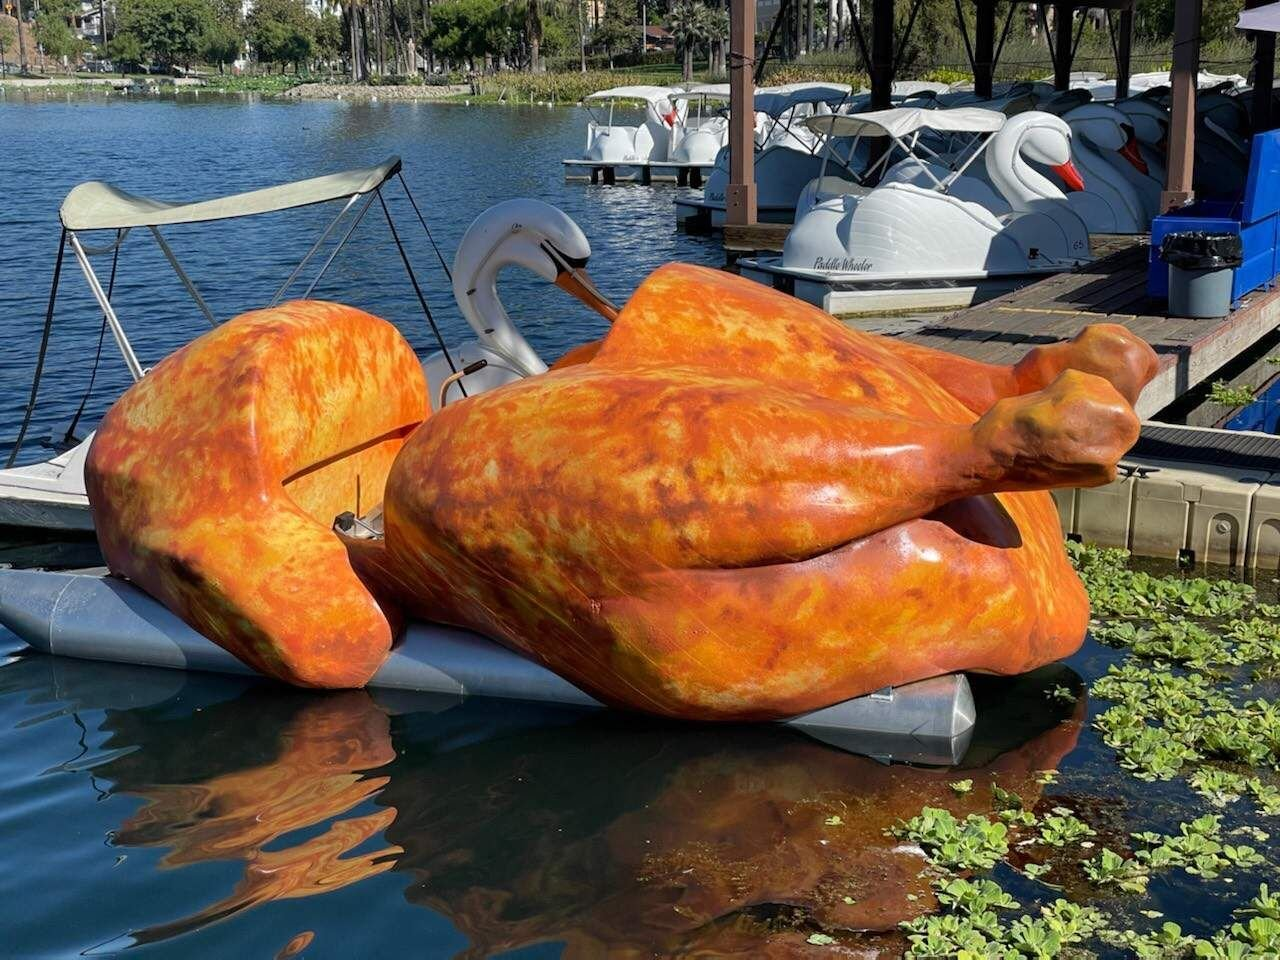 floating roasted chicken echo park lake martin cox close up.jpg